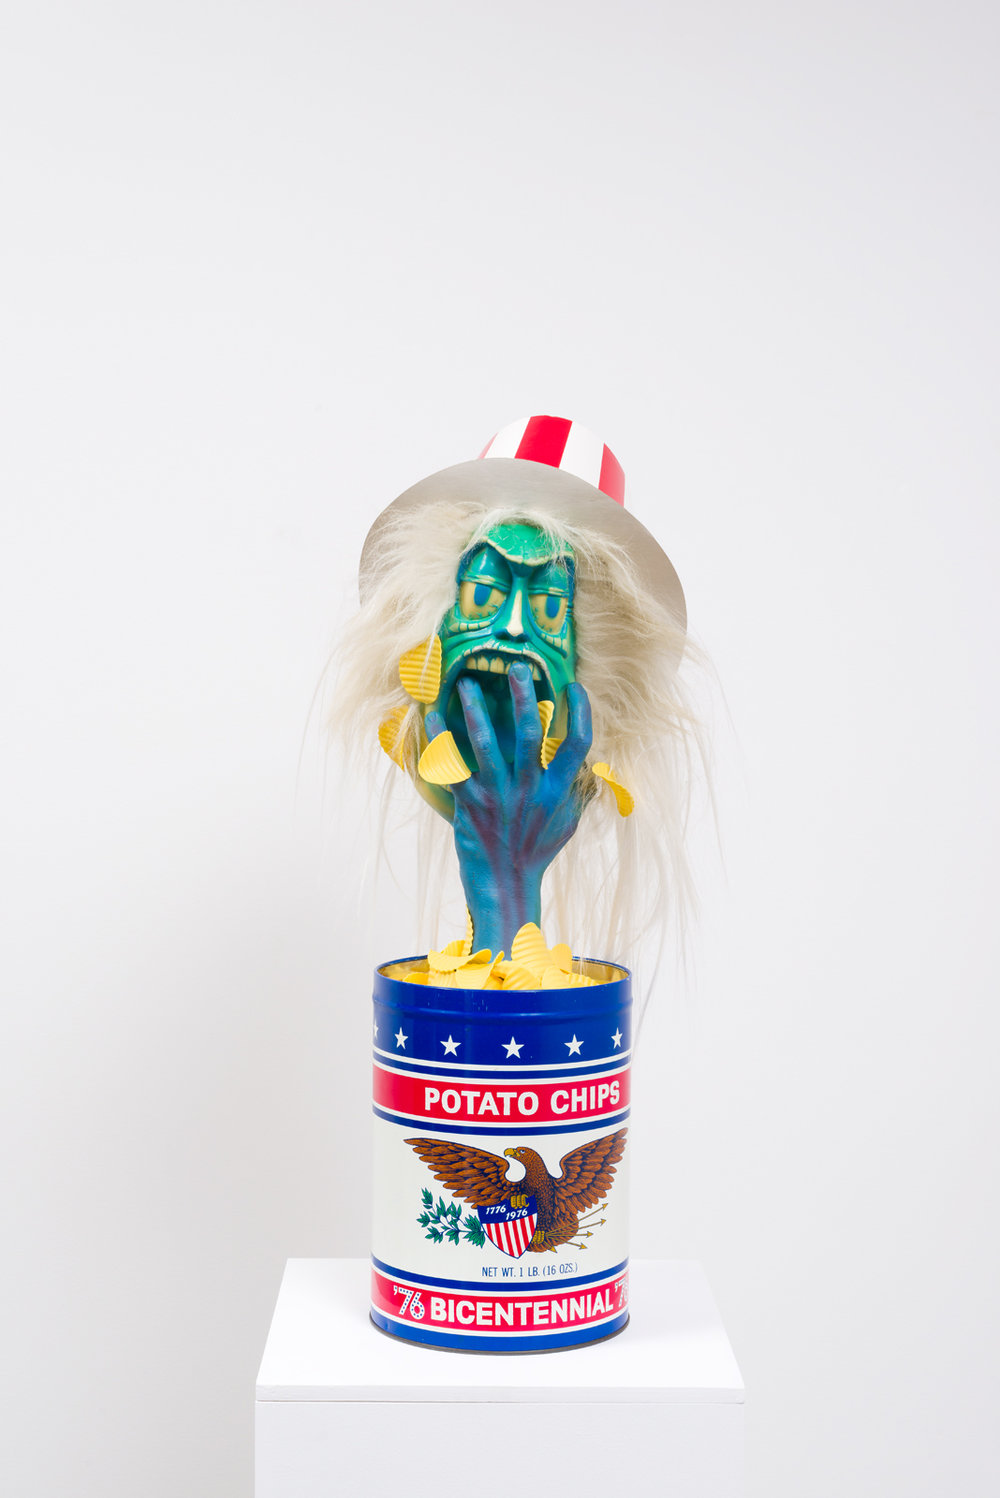 Political Junk Food,  2017  Potato chip tin, plastic potato chips, painted plastic hand and head, wig hair, printed cardboard hat, pedestal